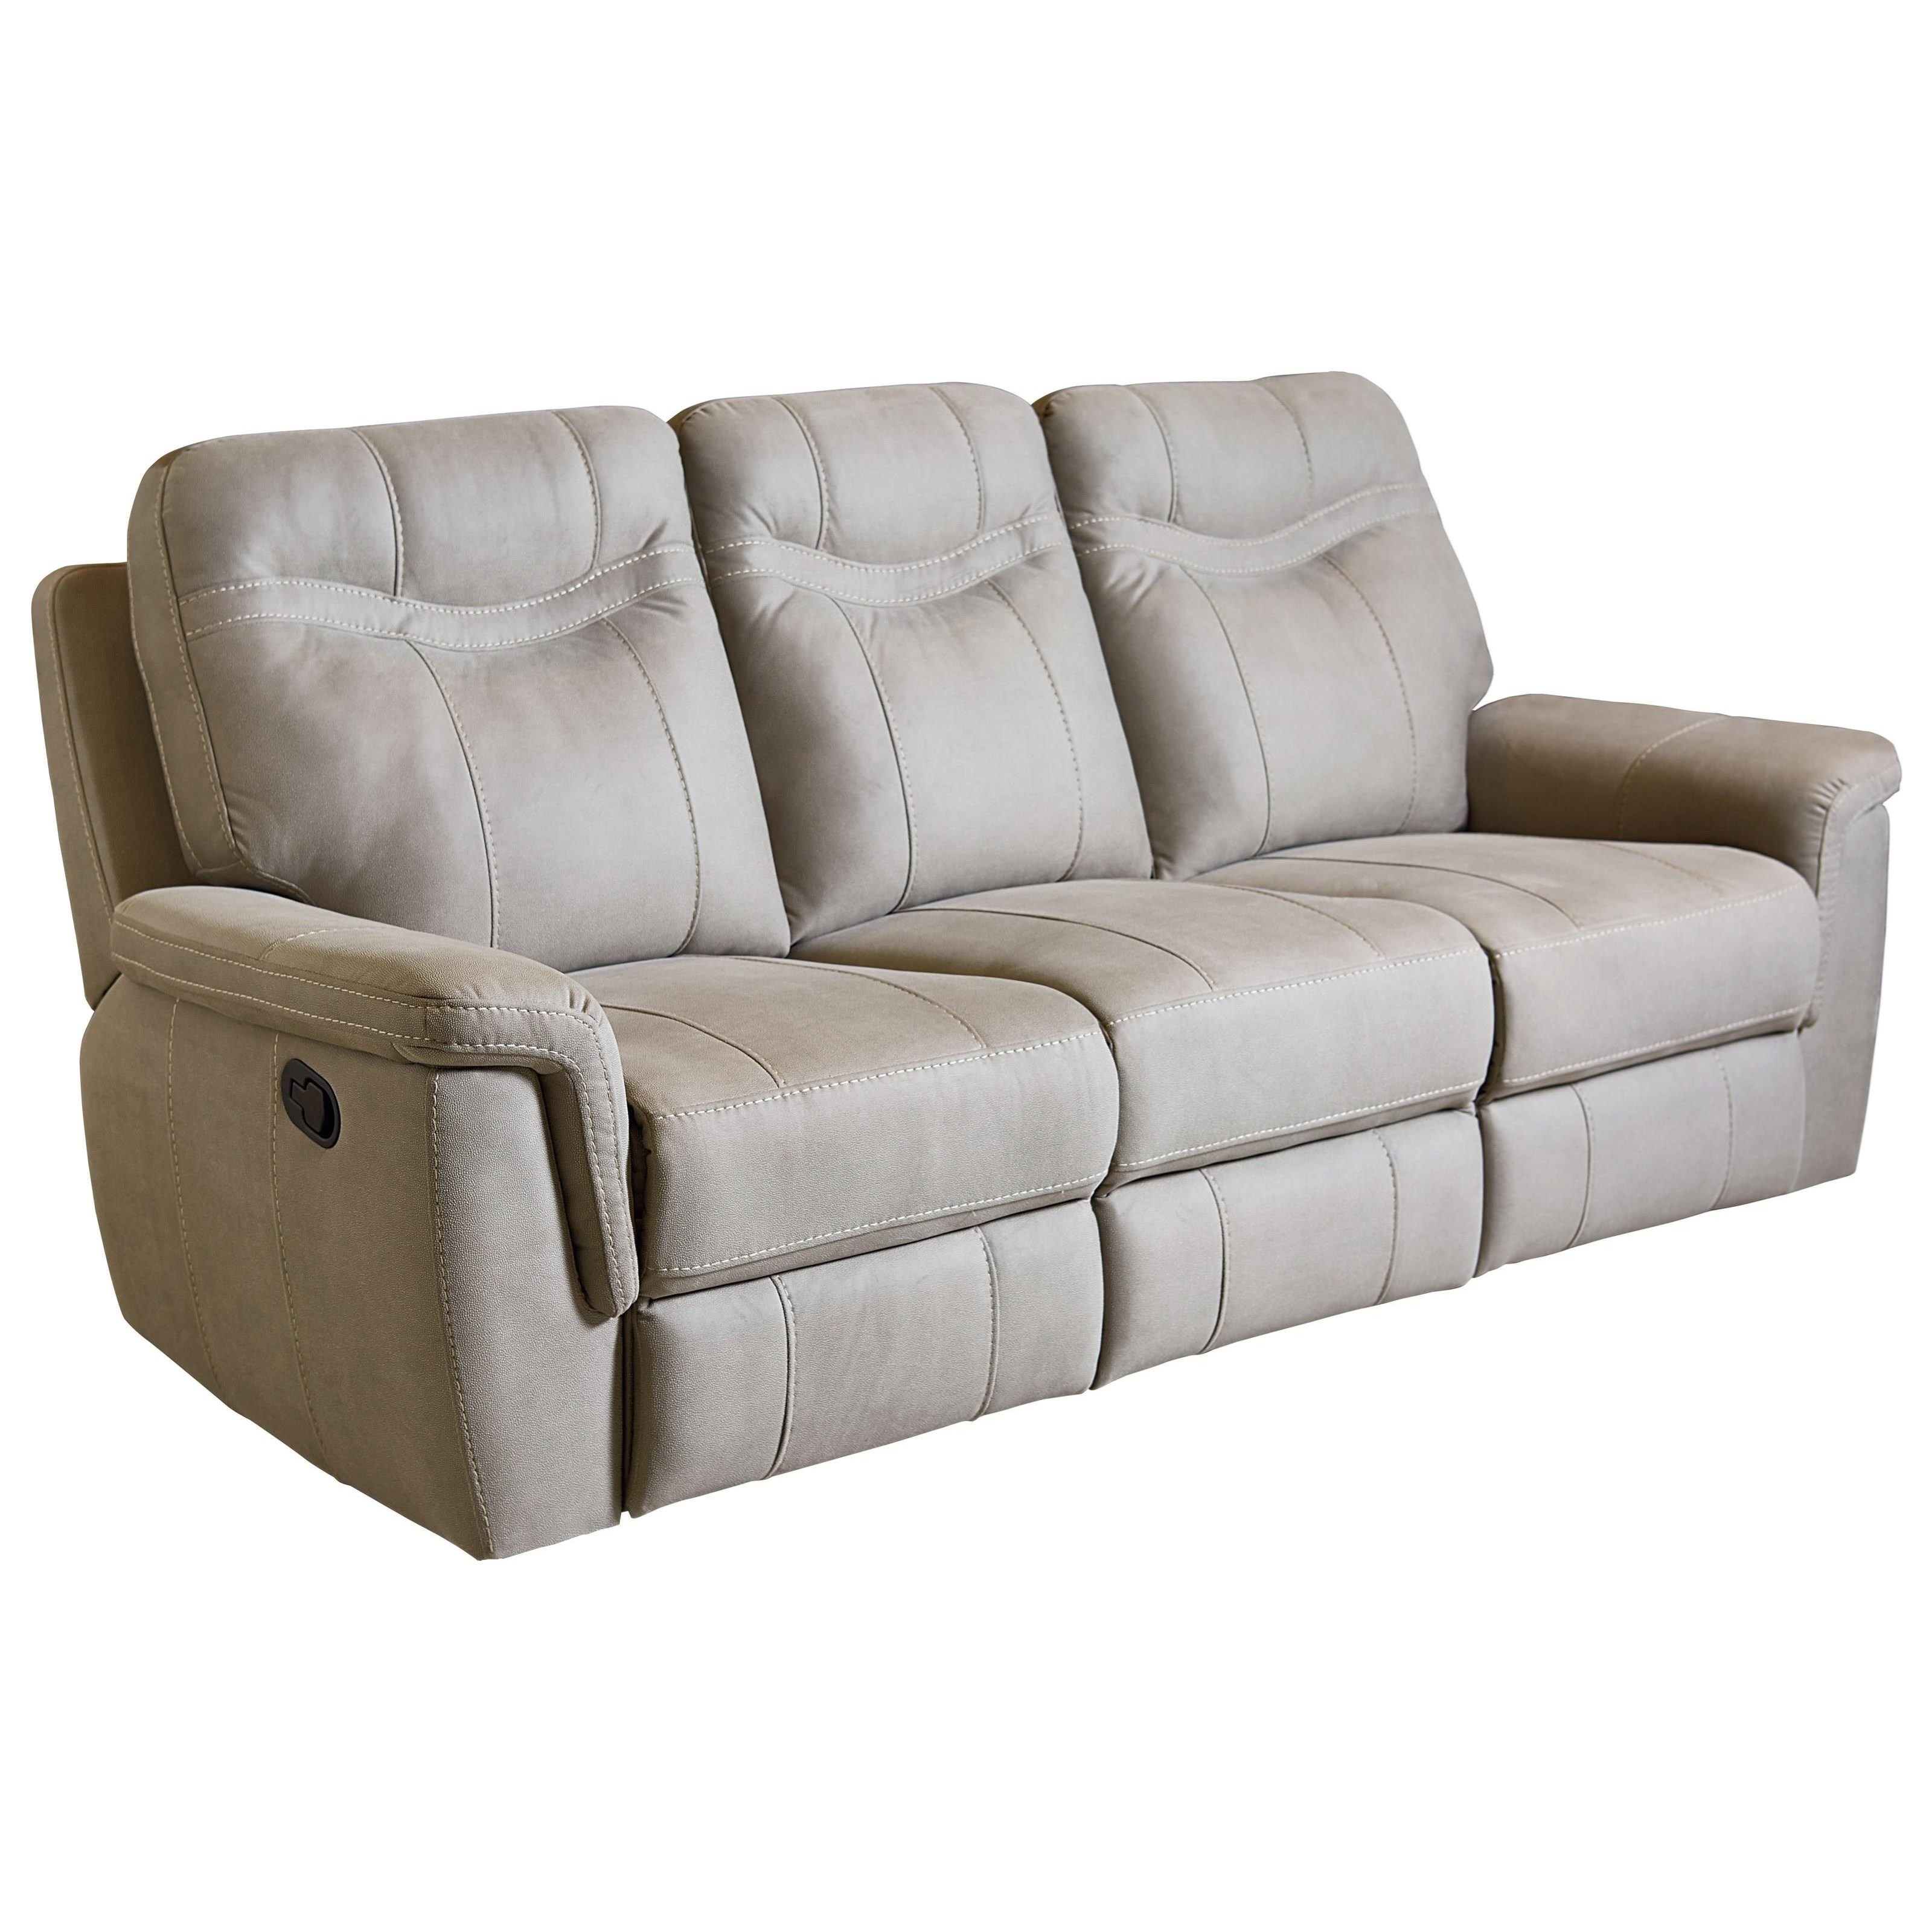 contemporary stone colored reclining sofa by standard furniture wolf and gardiner wolf furniture. Black Bedroom Furniture Sets. Home Design Ideas